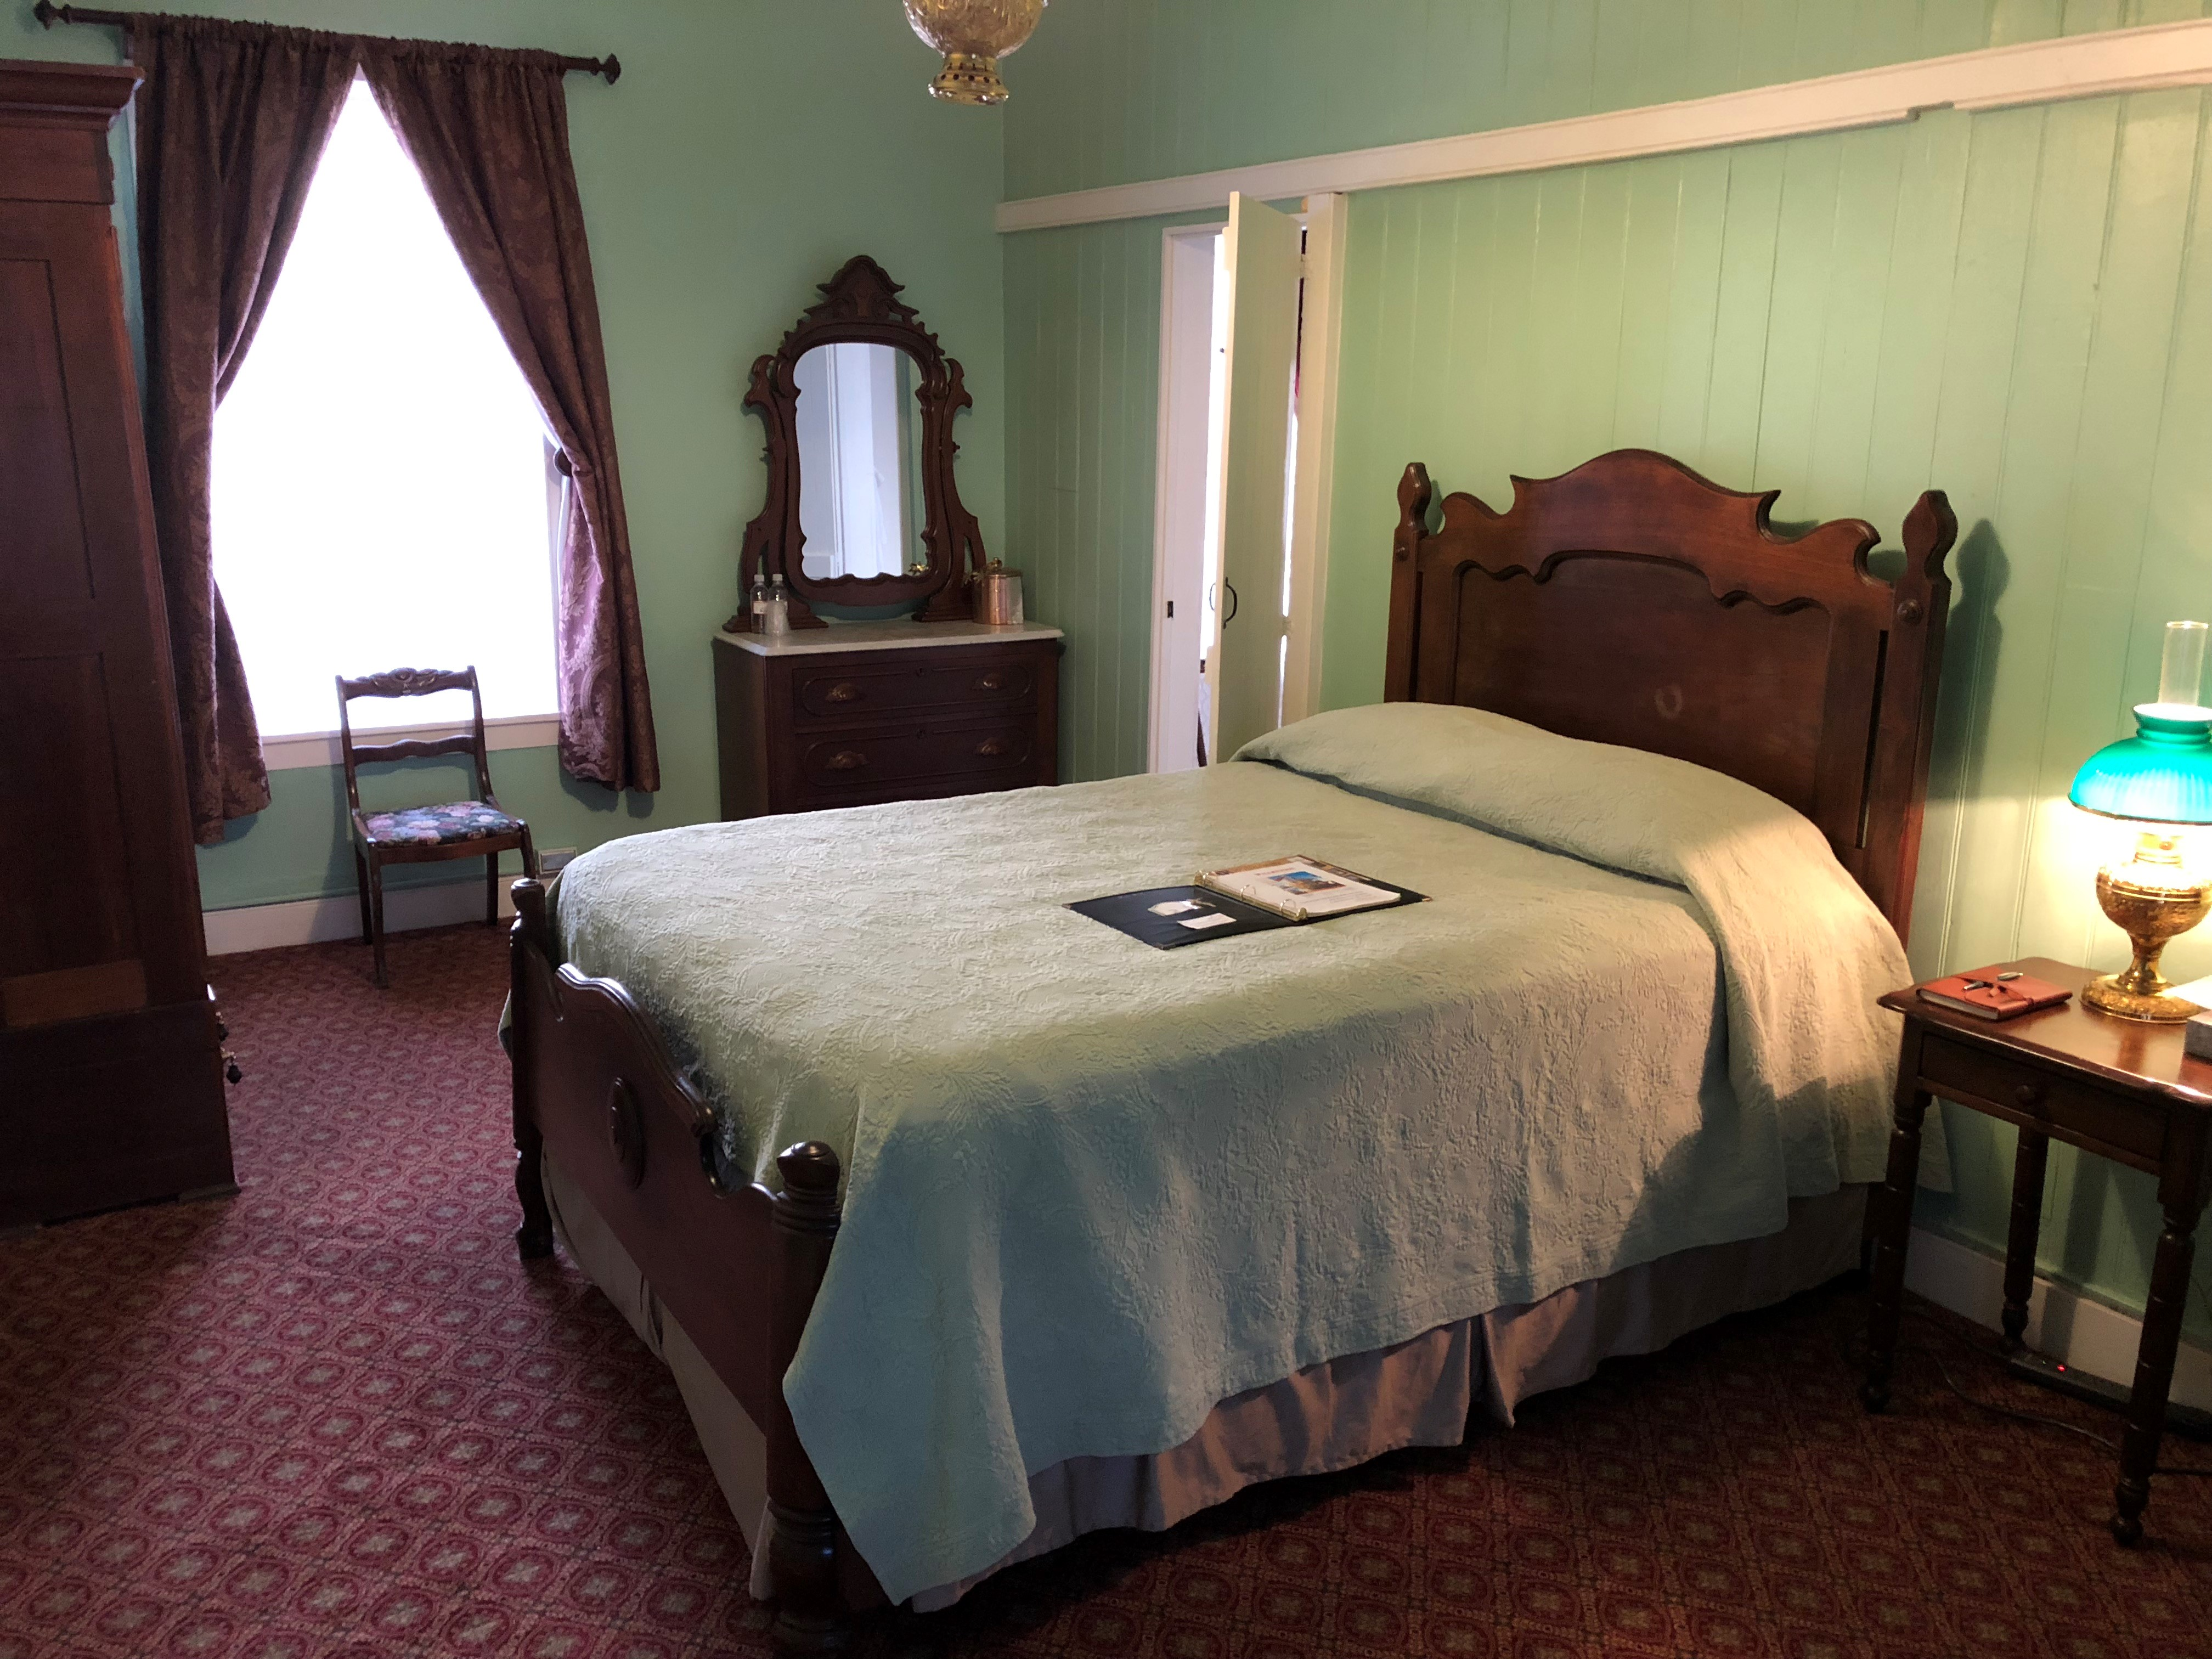 Room 4 at the Landmark Inn State Historic Site, reflecting the late 1800s in green, brown, and maroon colors